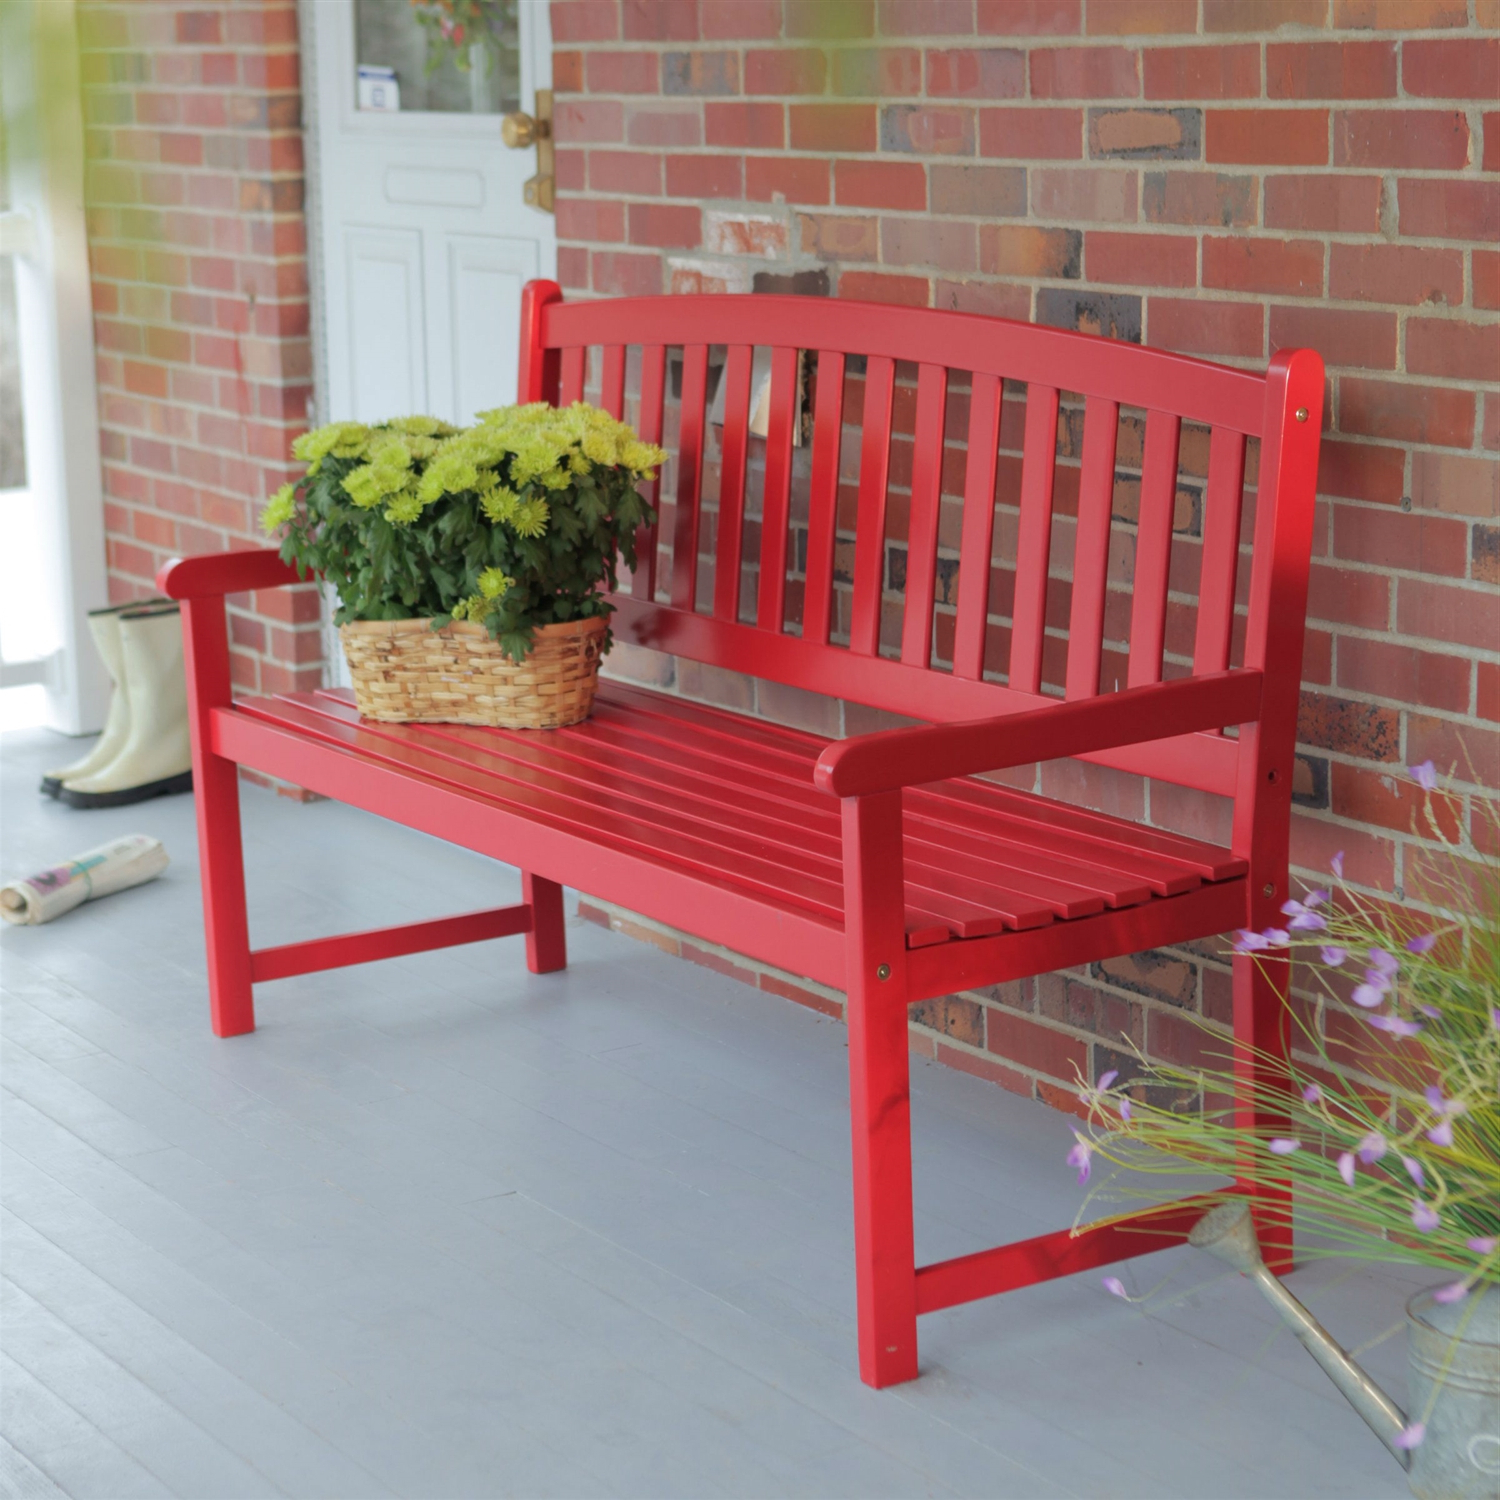 Newest Outdoor Garden Storage Bench — Tedxoakville Home Design Blog With Bence Plastic Outdoor Garden Benches (View 7 of 25)